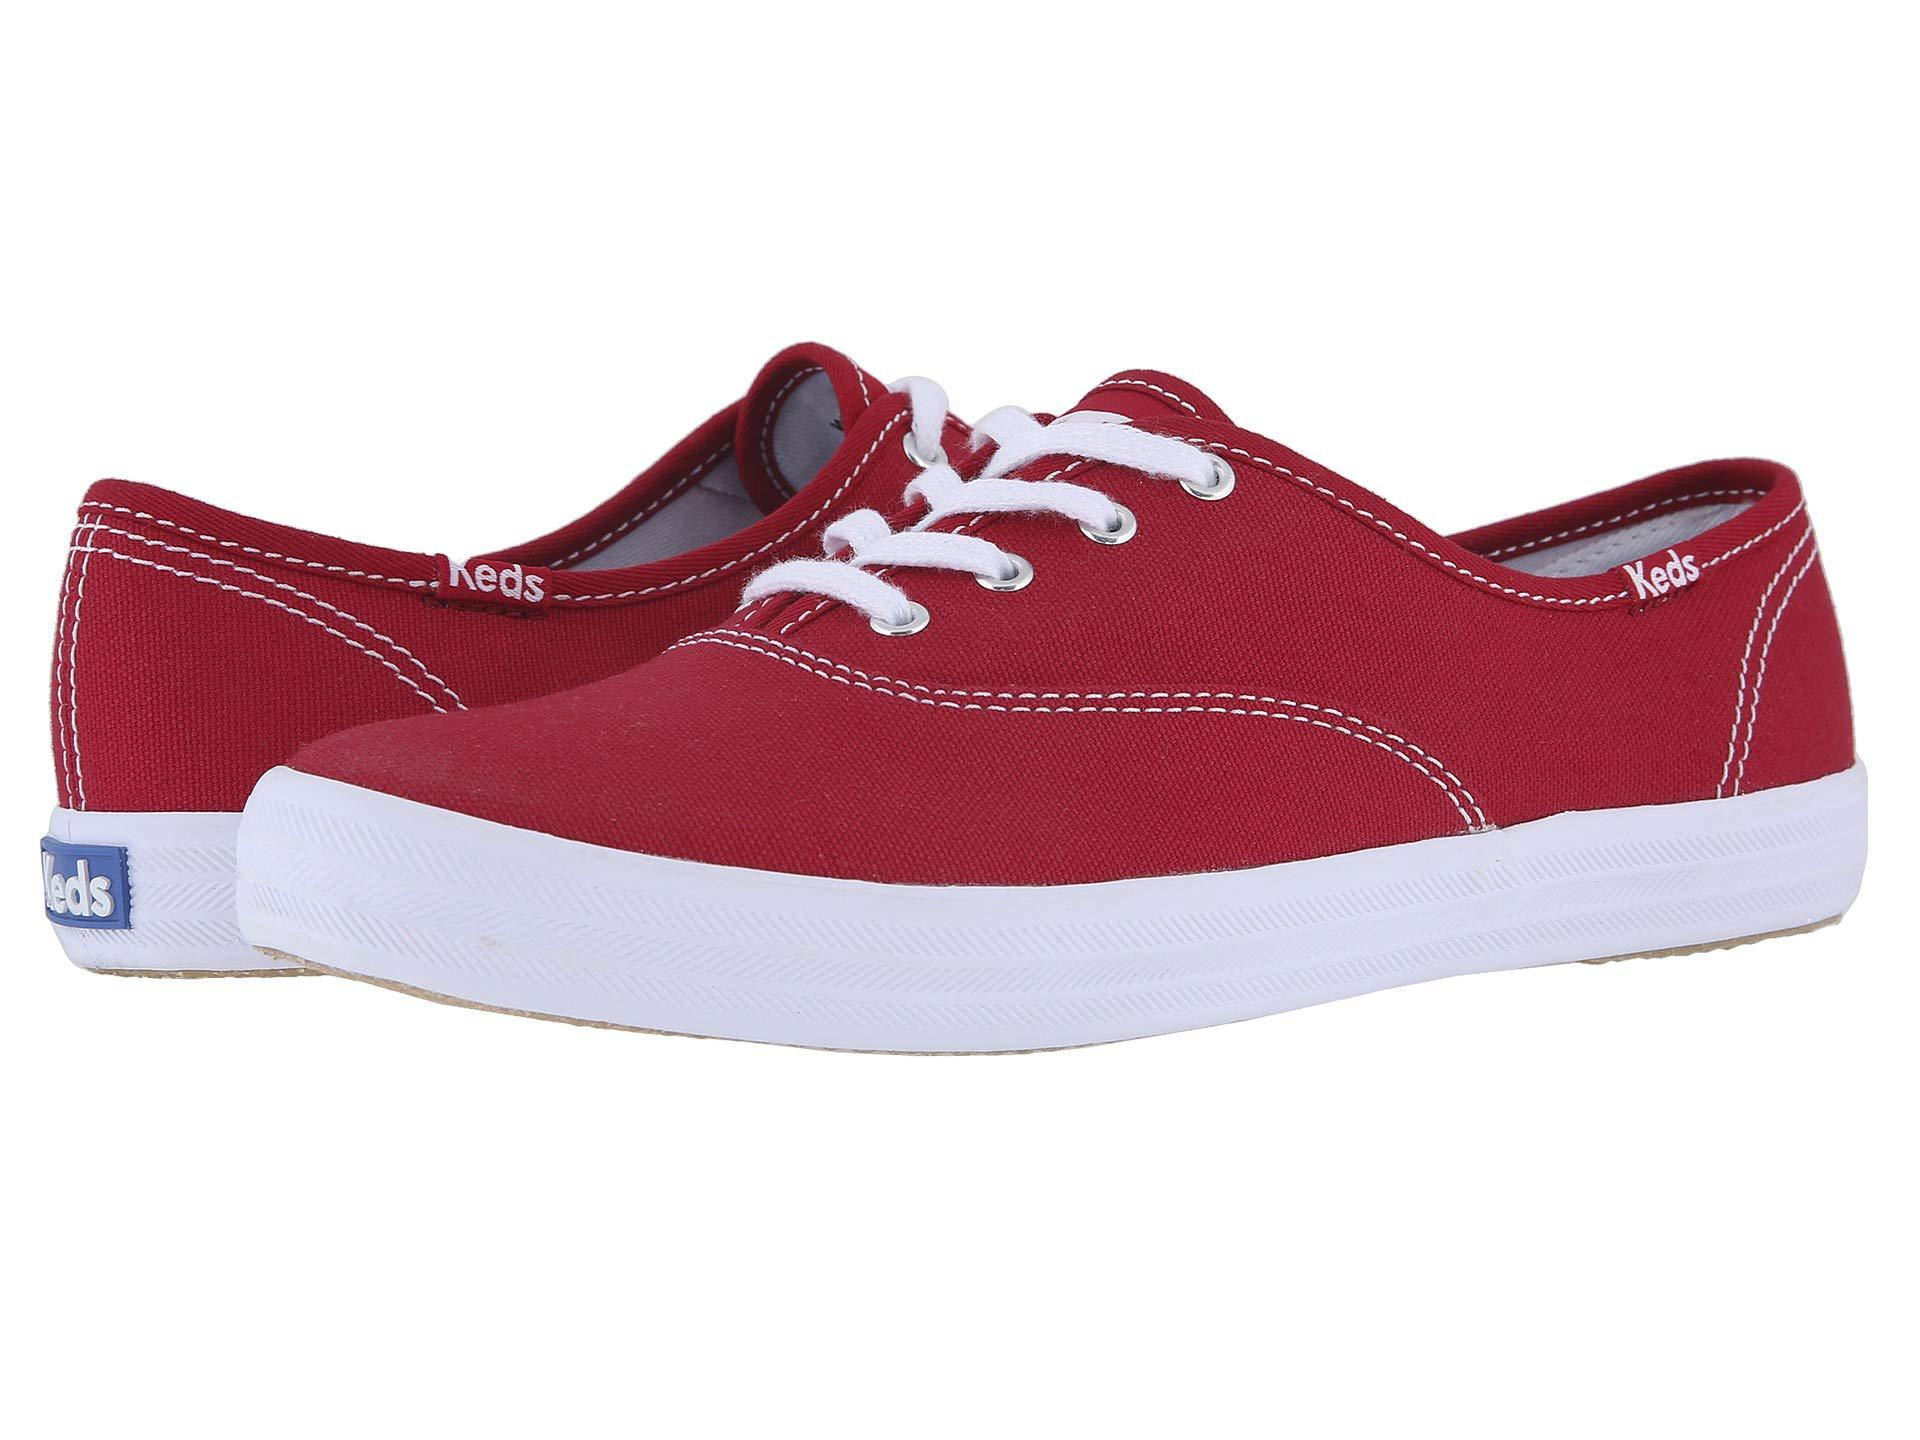 cb64febe6712df Lyst - Keds Women s Champion Originals in Red - Save 58%